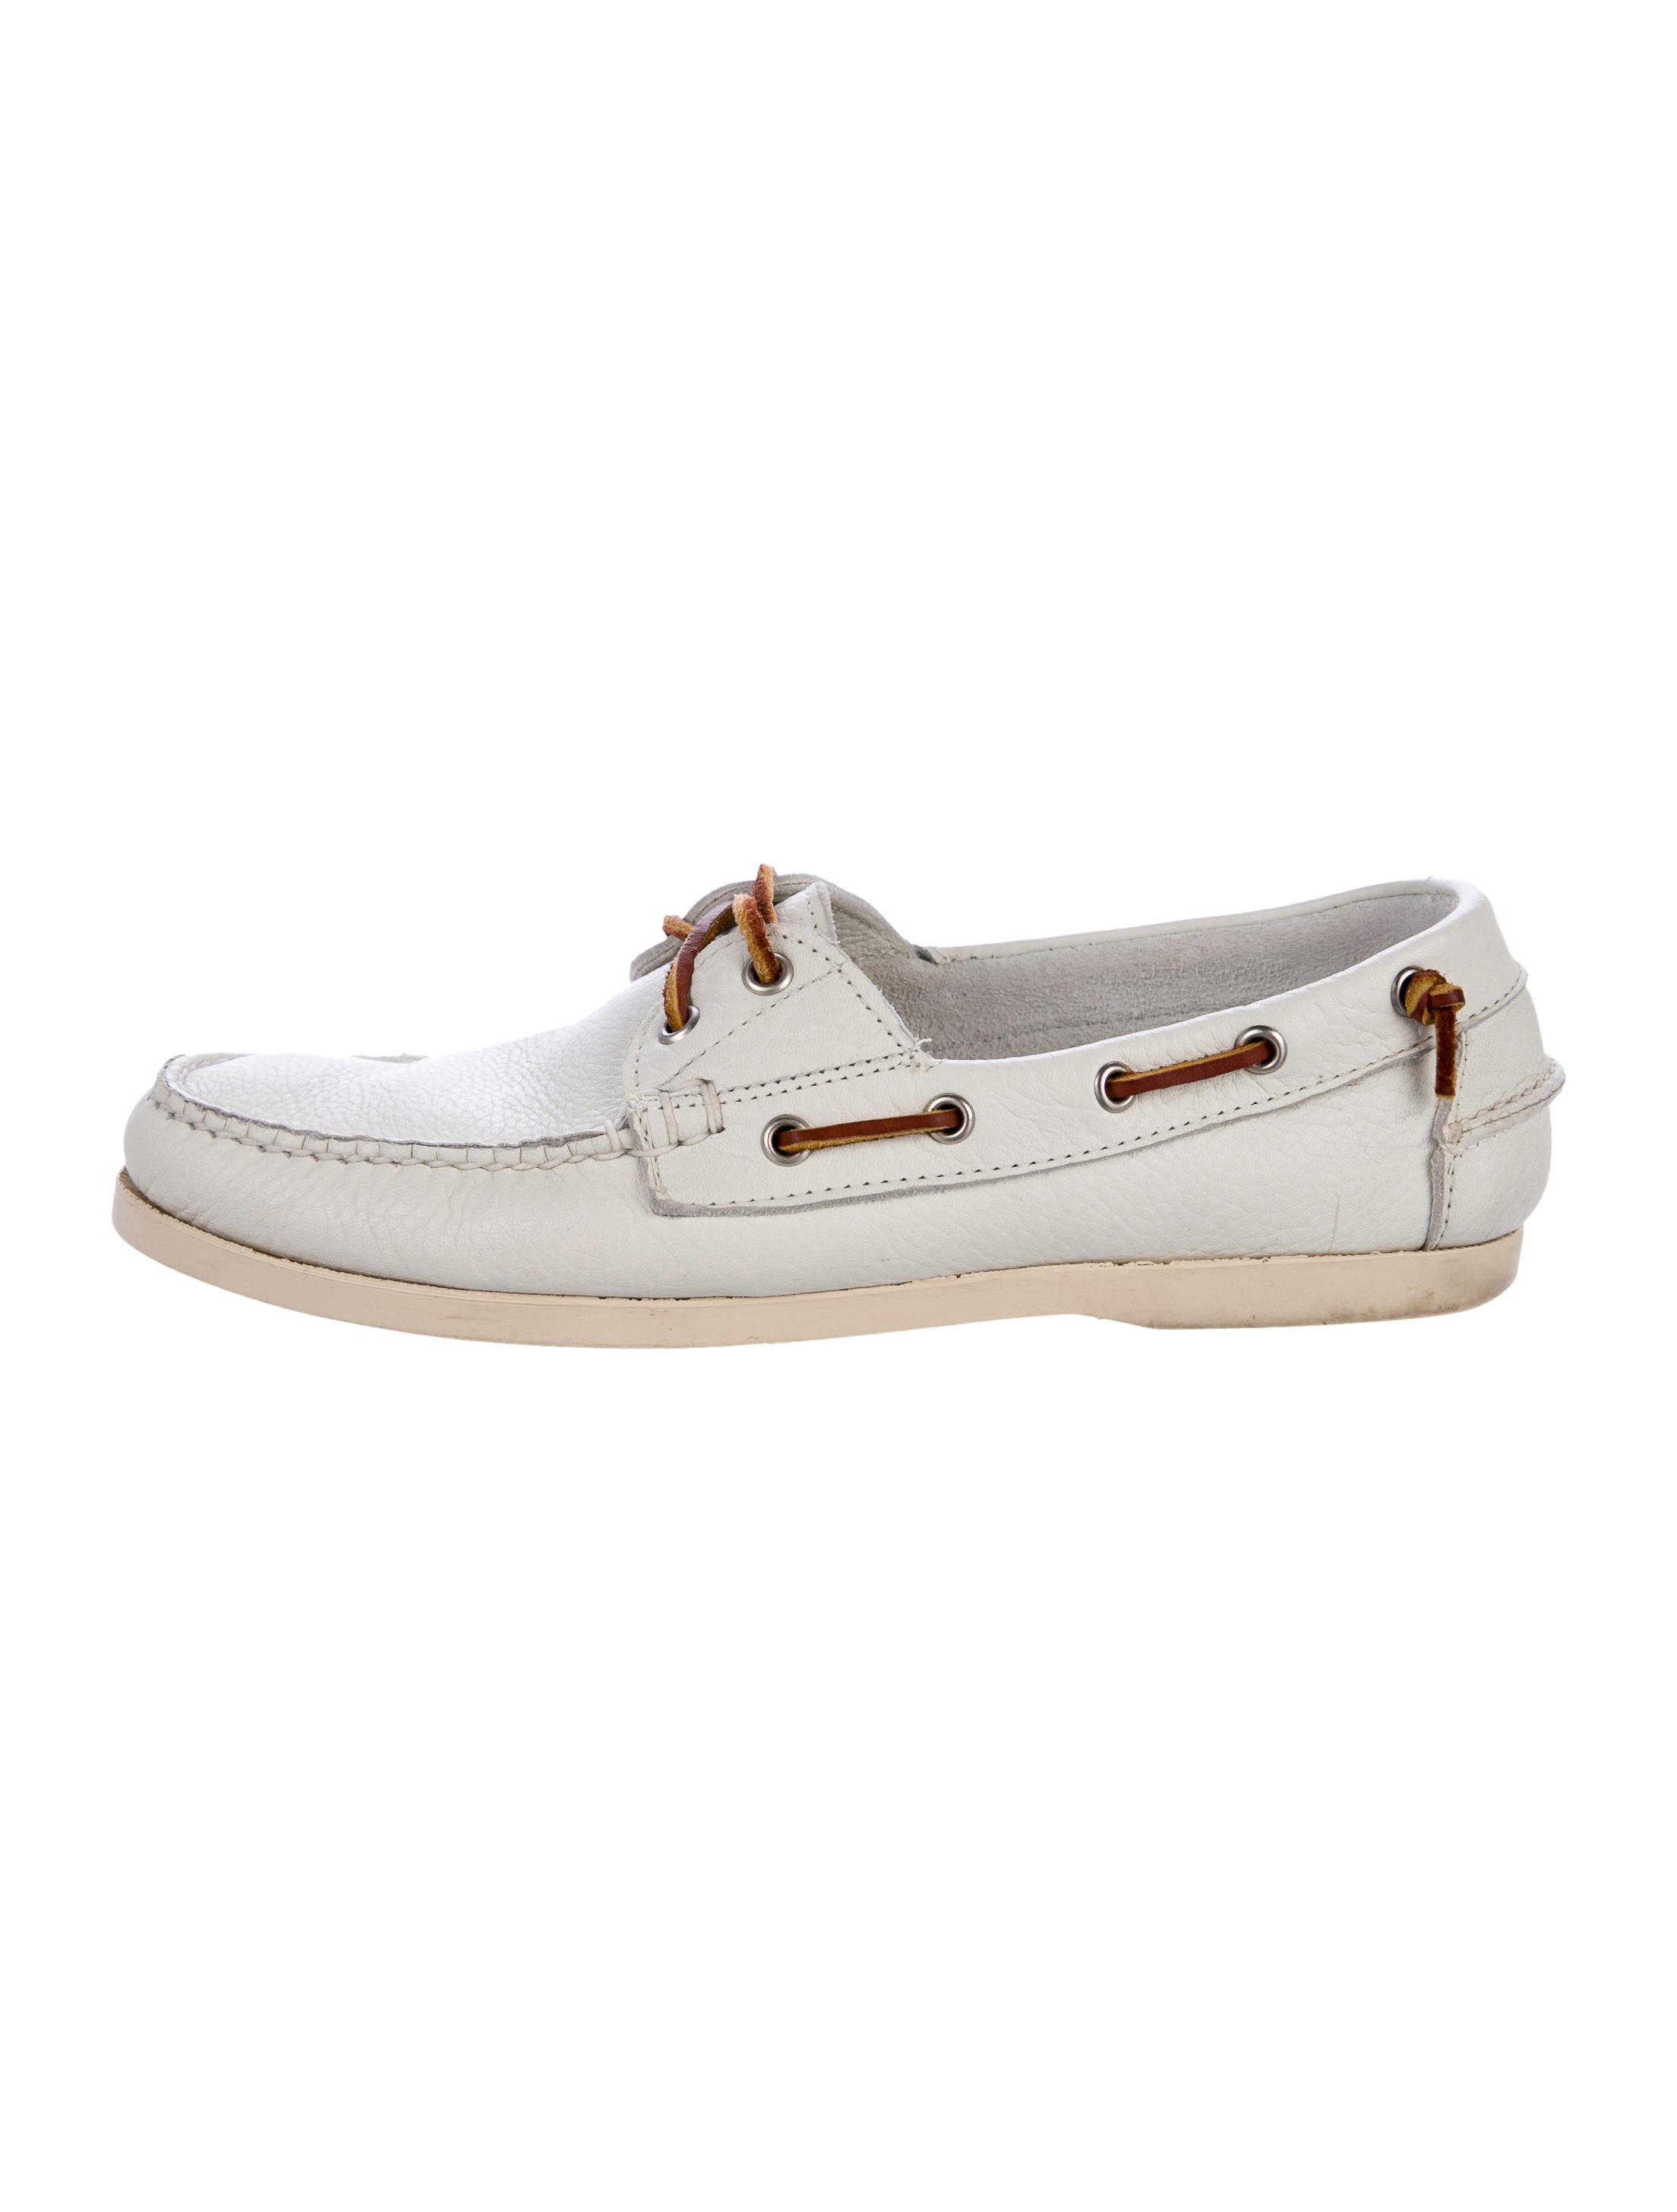 ralph leather boat shoes shoes wyg23890 the